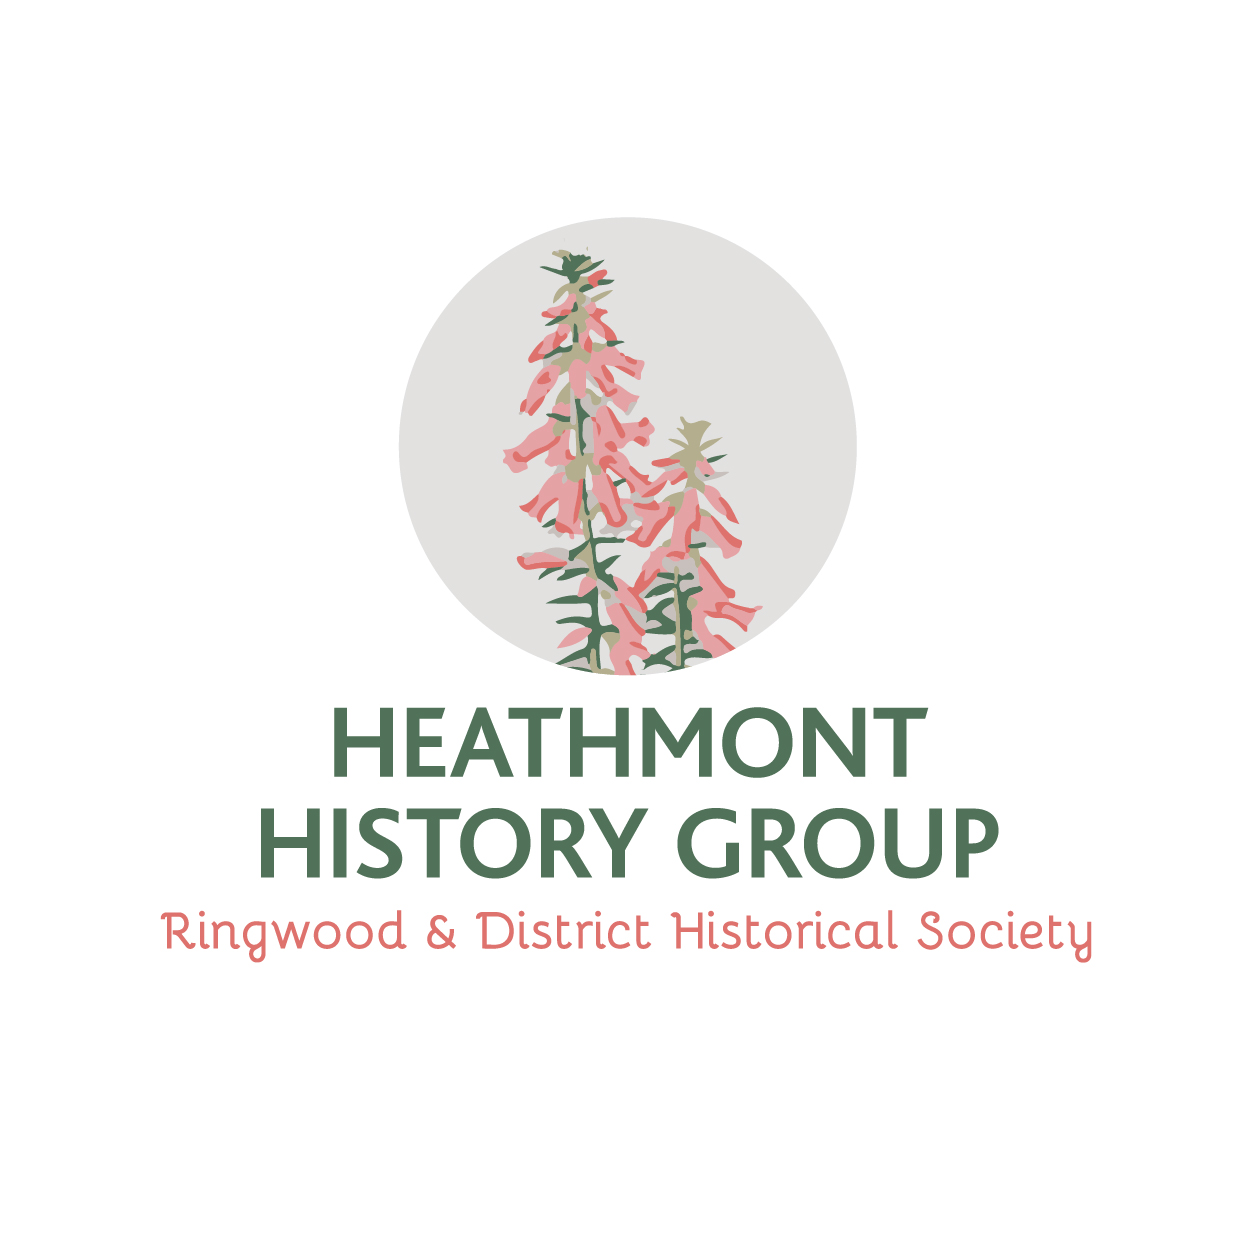 Heathmont History Group logo